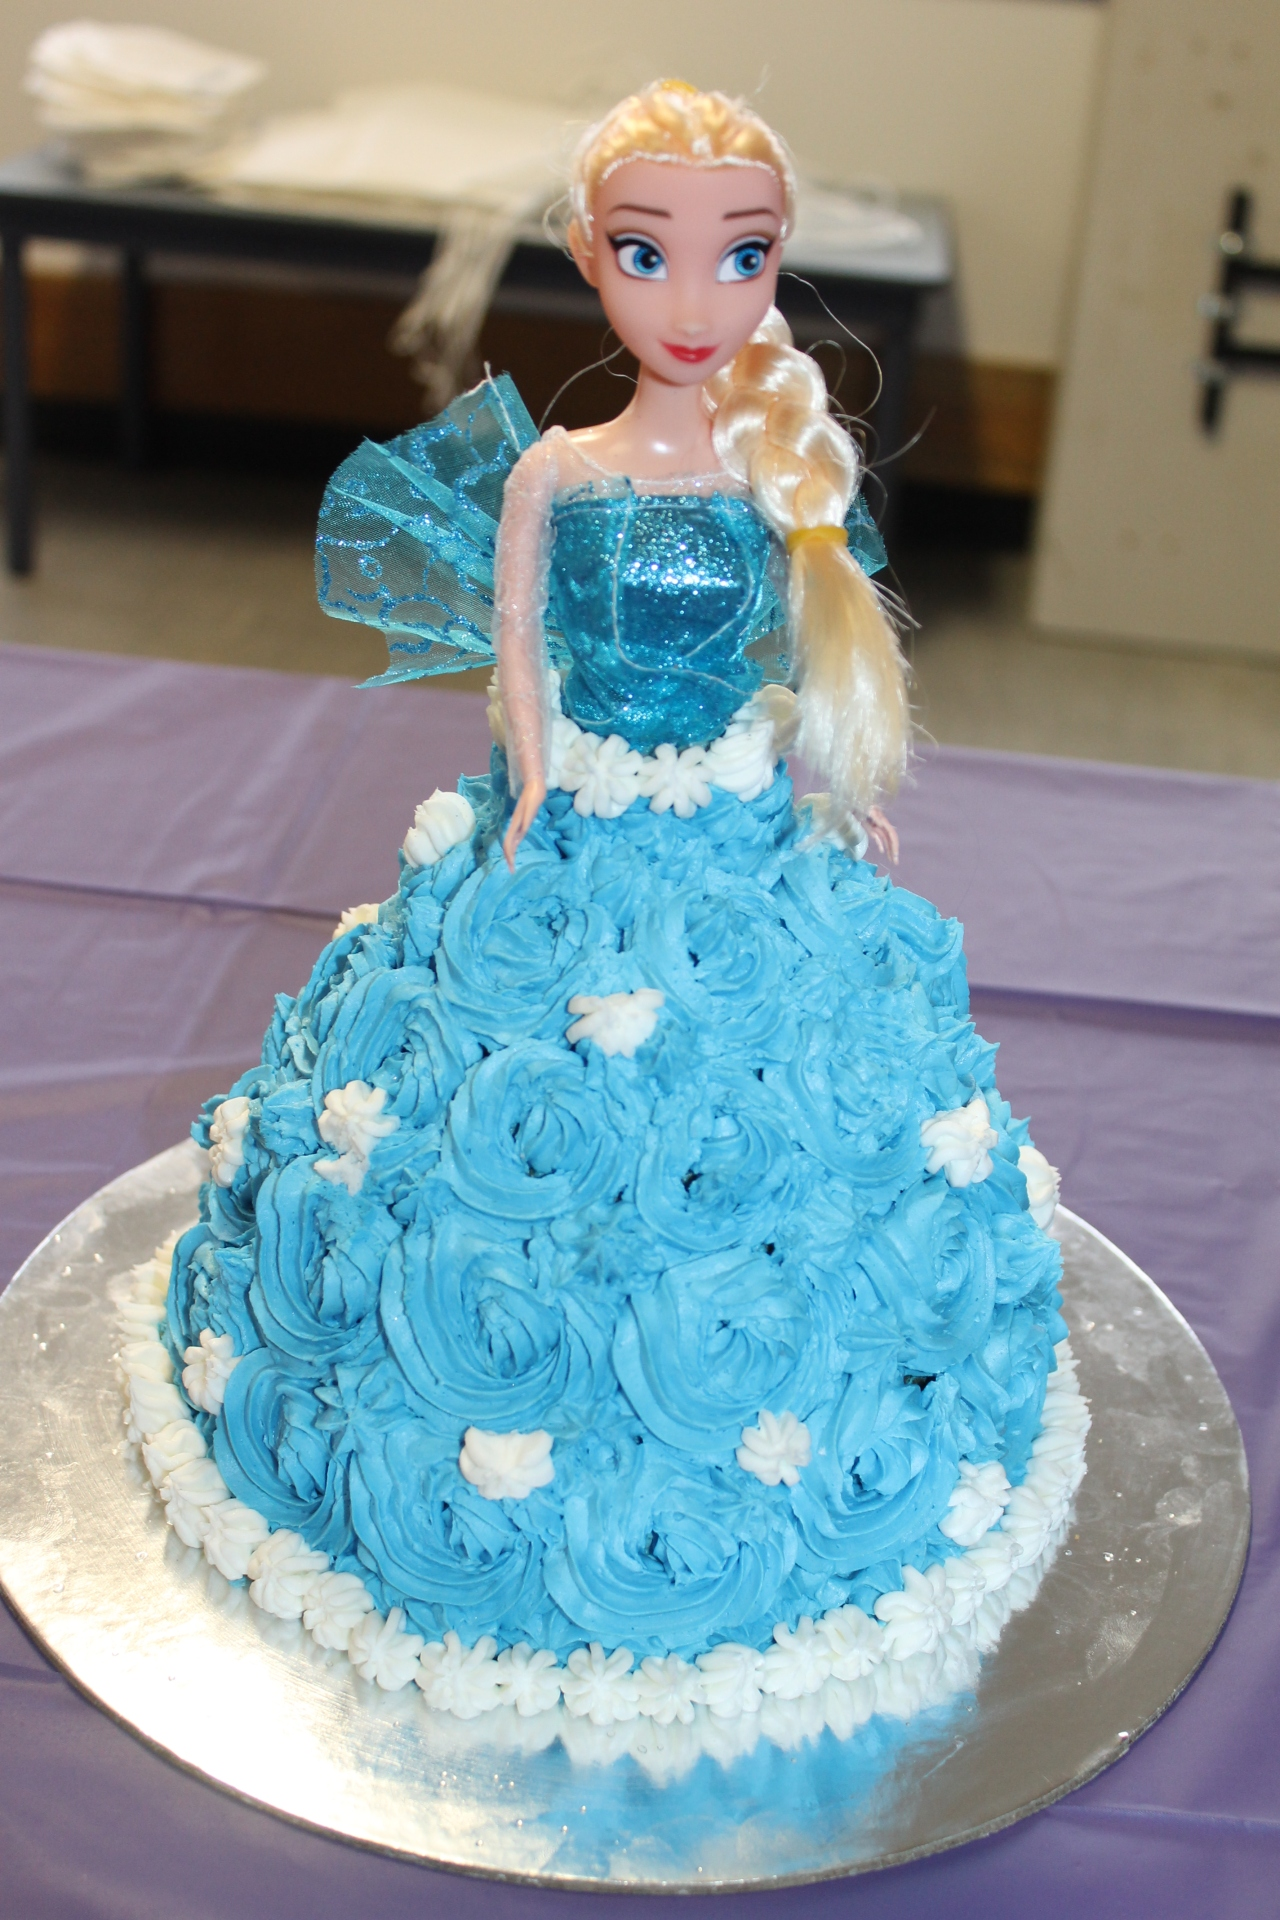 Frozen Cake – Elsa & Anna | It's All About Food